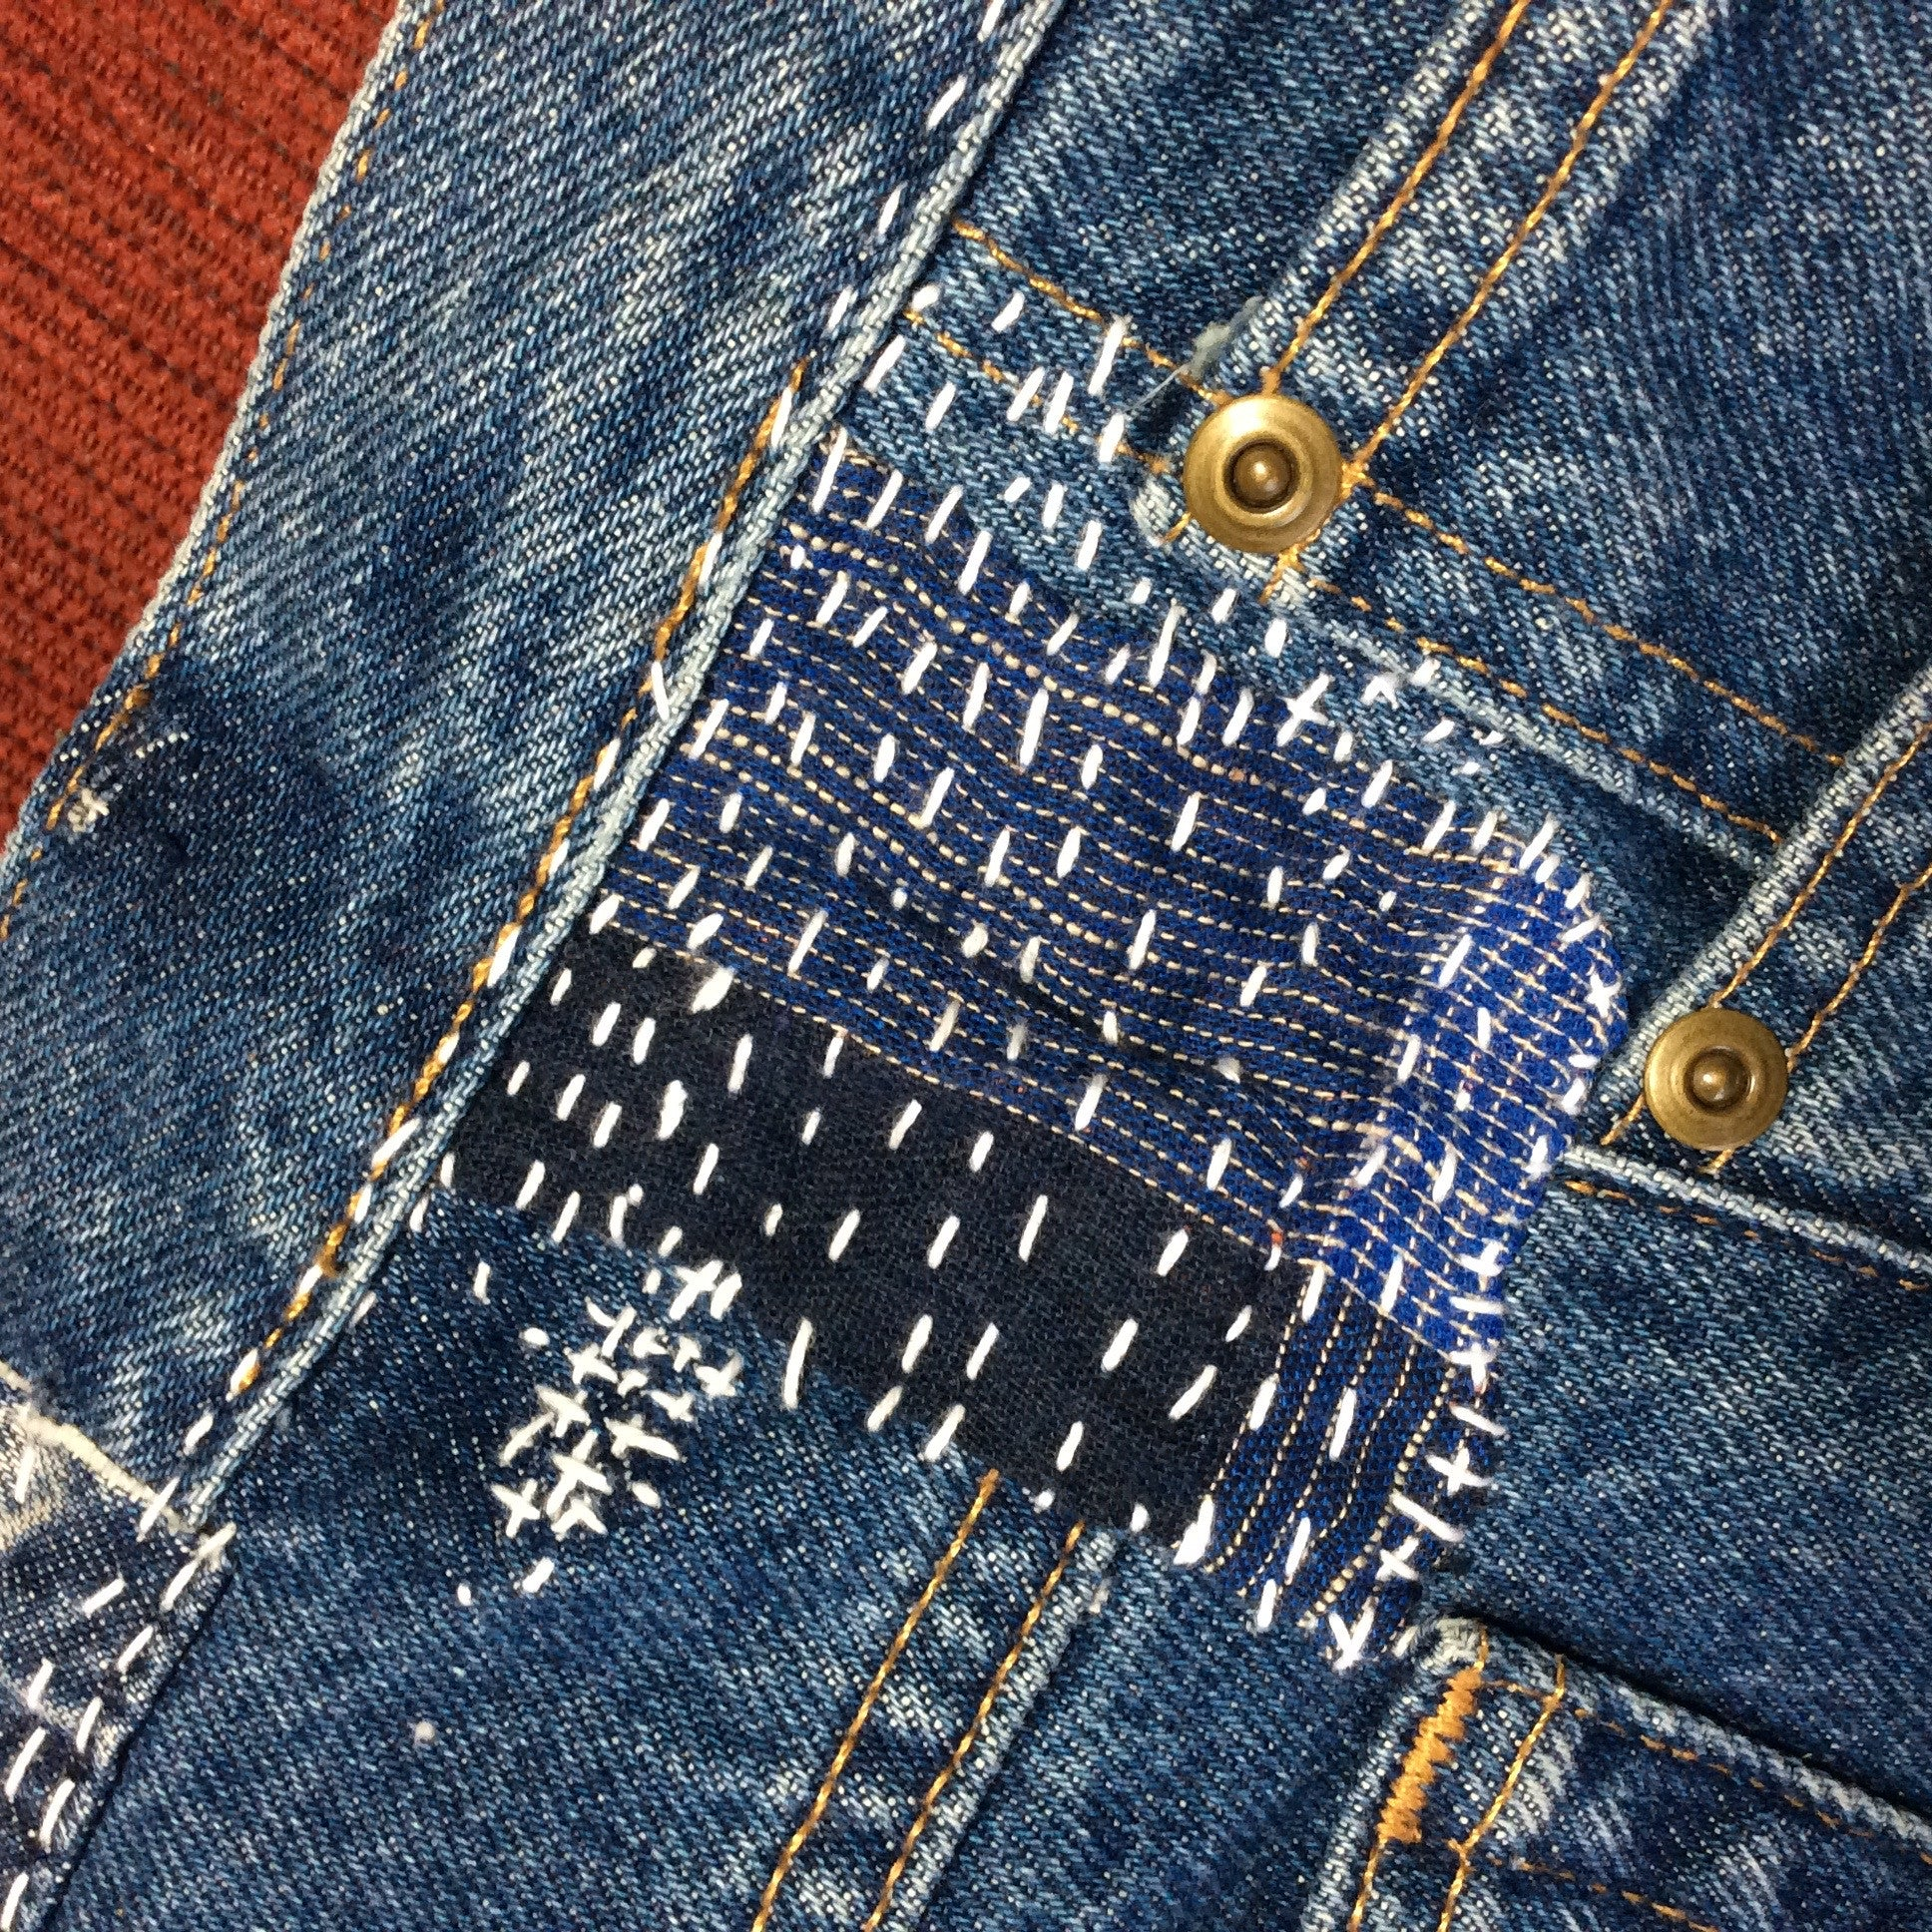 boro sashiko mending on blue jeans